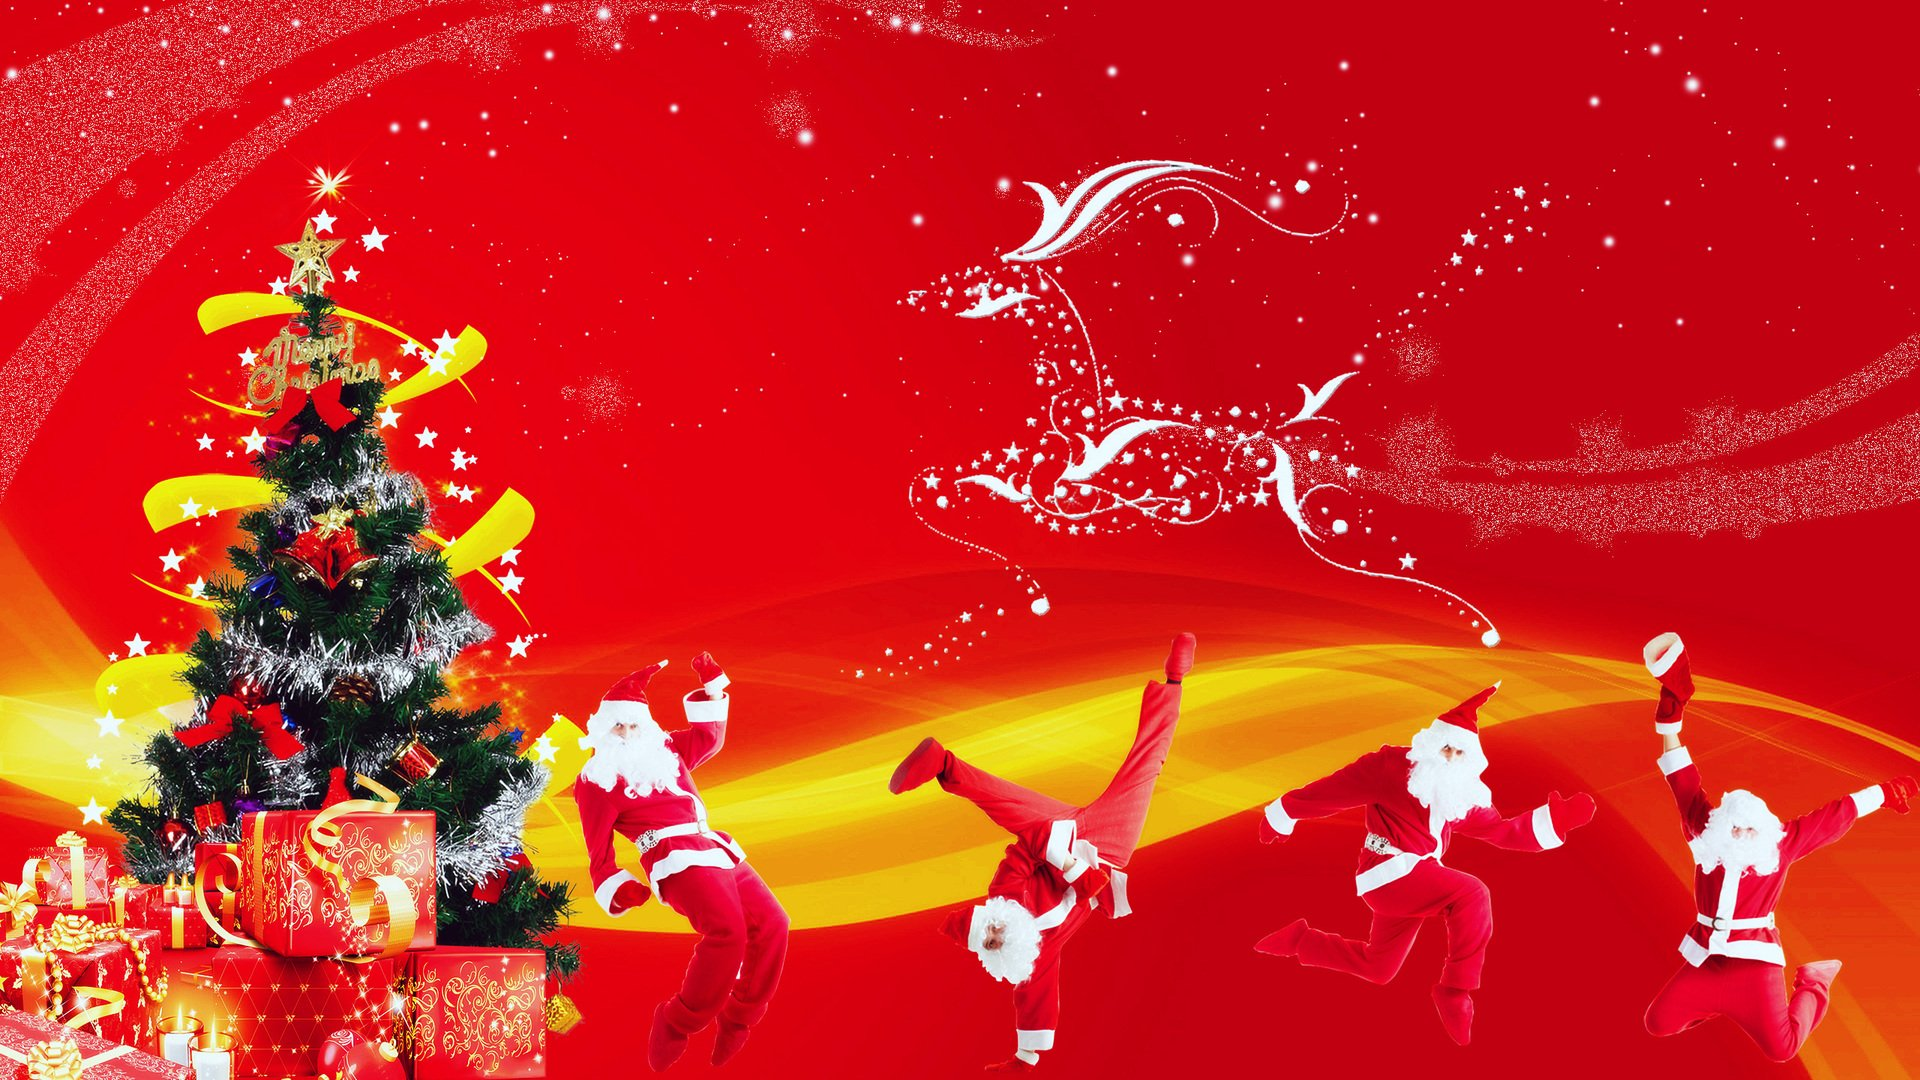 Download Funny Christmas Wallpaper Funny Christmas Santa Claus 1920x1080